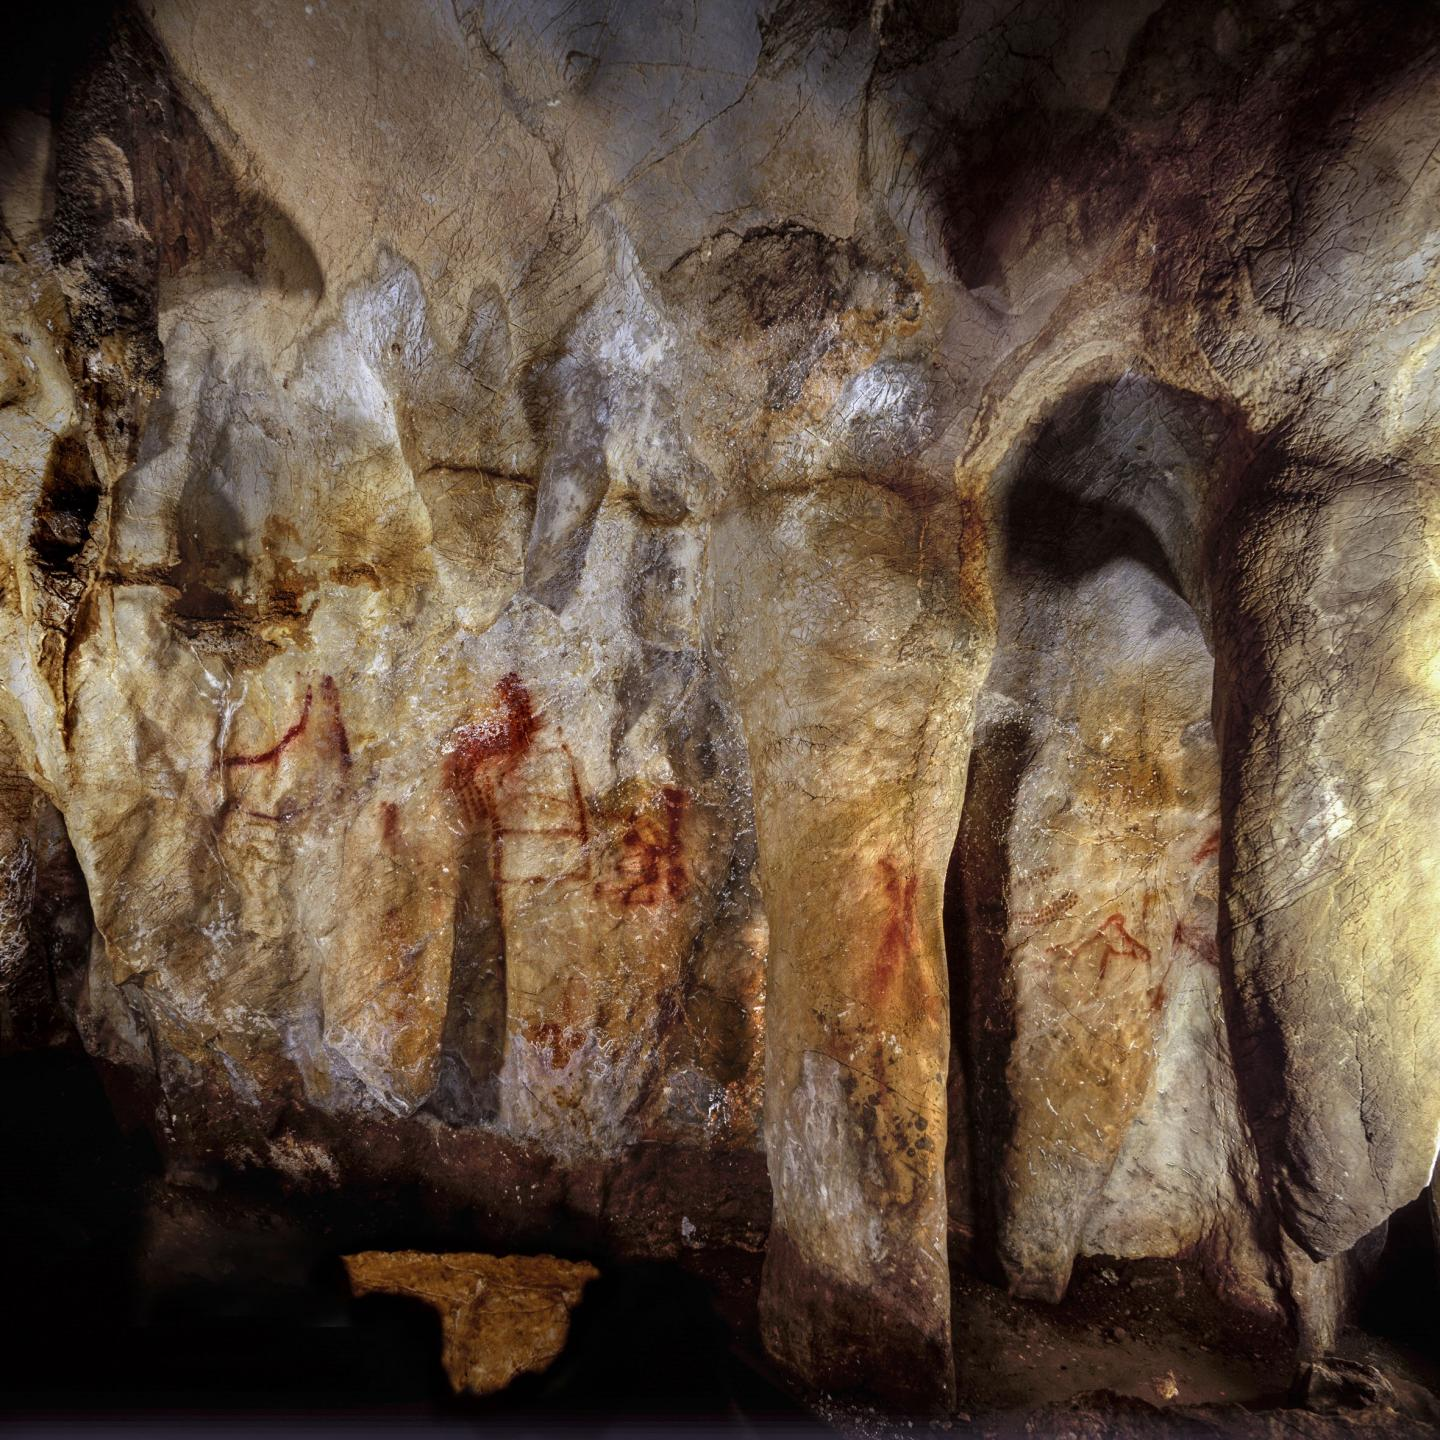 La Pasiega, Section C, Cave Wall With Paintings